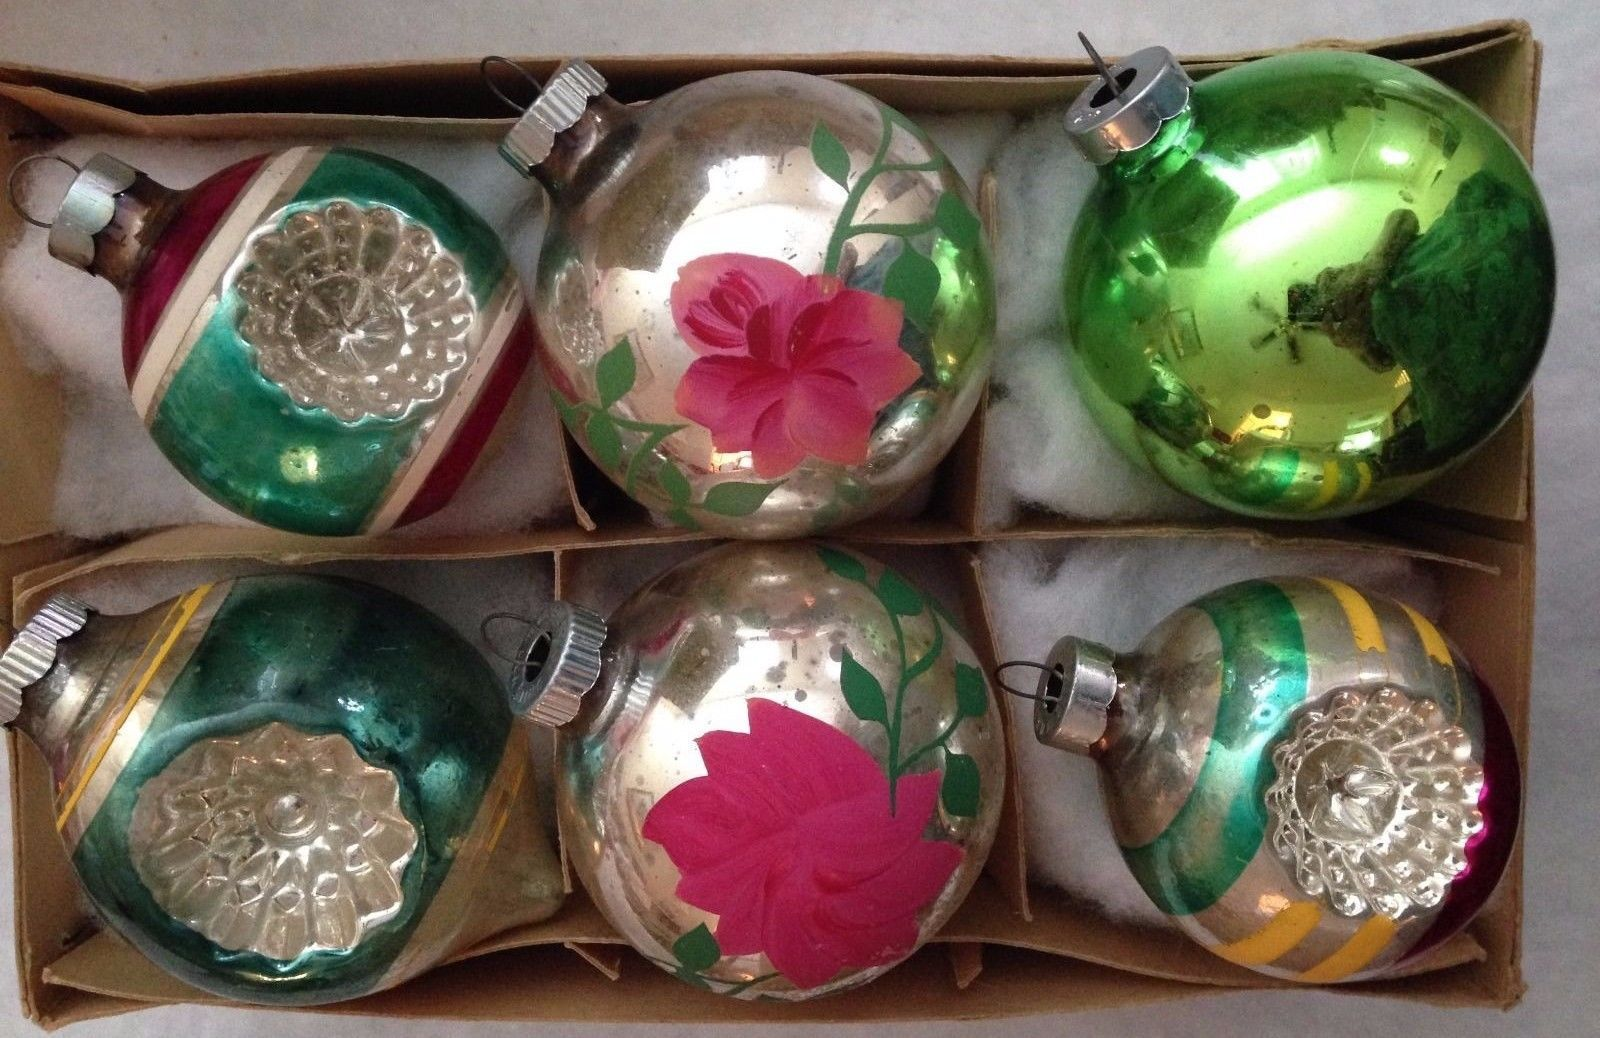 6 Antique Shiny Brite Double Star Flower Indents Poinsettias Christmas Ornaments   eBay